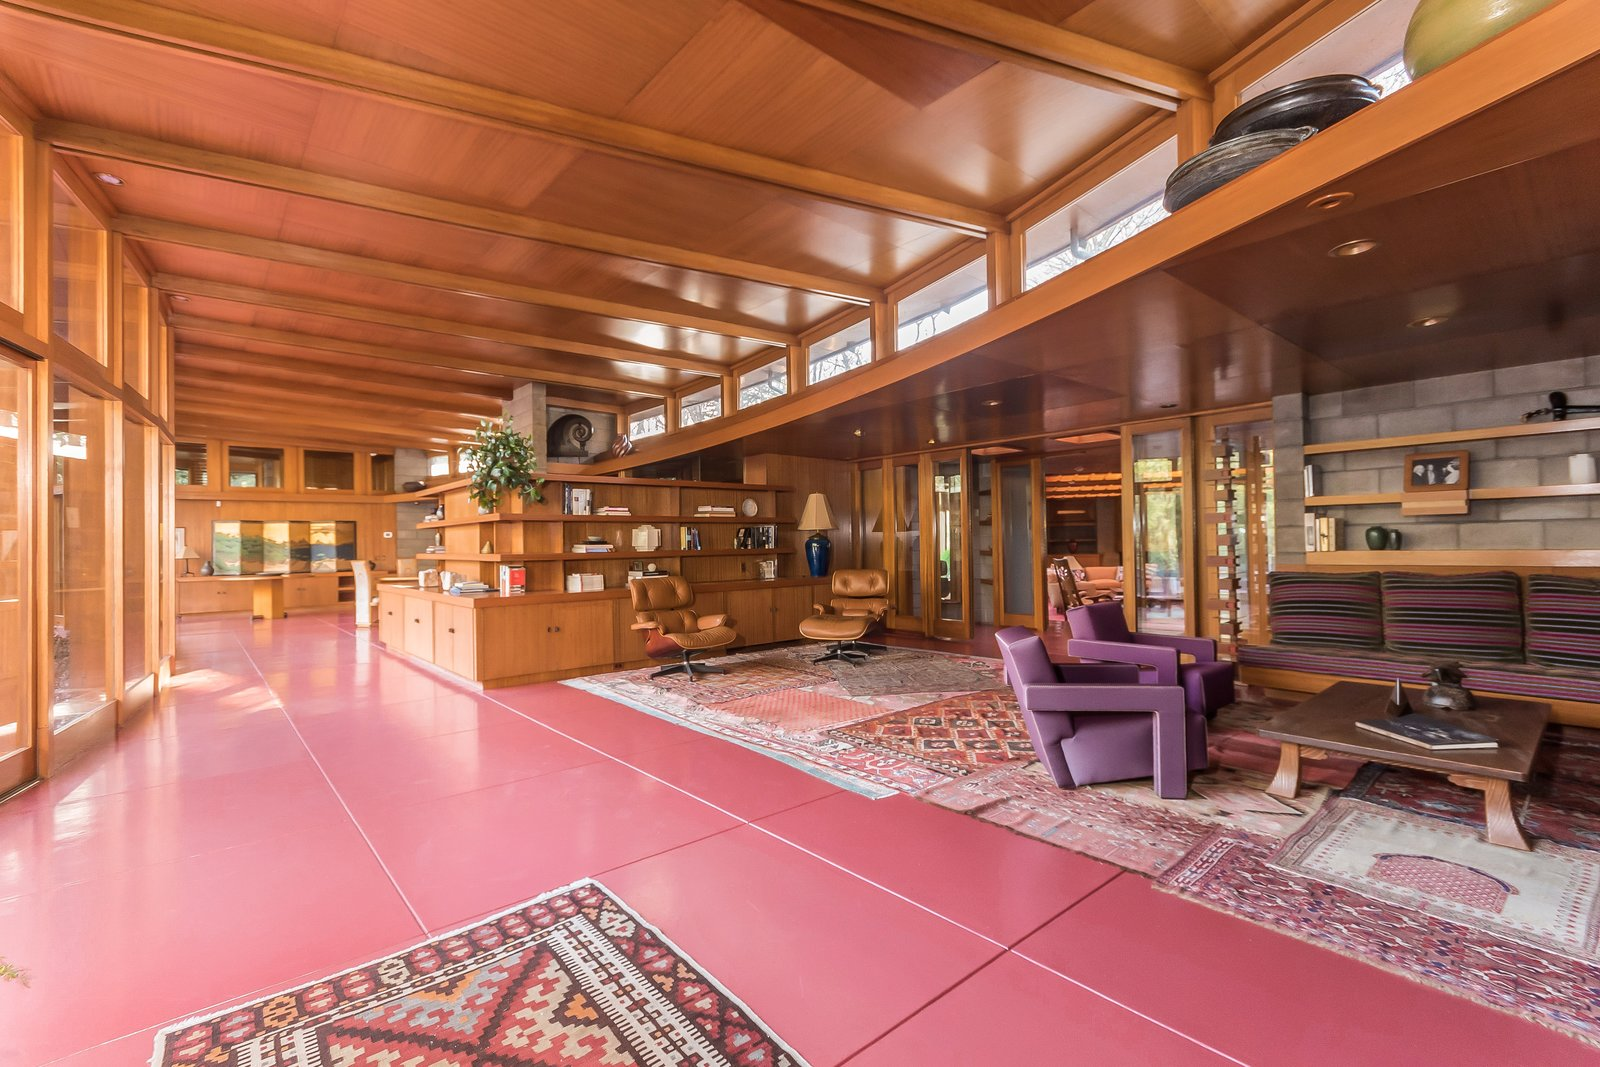 The red flooring that runs throughout the interior is Colorundum in Cherokee red, a color Wright loved to use in his projects. Jim Gricar of Houlihan Lawrence explains that it's a series of minerals that have a low freezing point, which makes it difficult to crack.